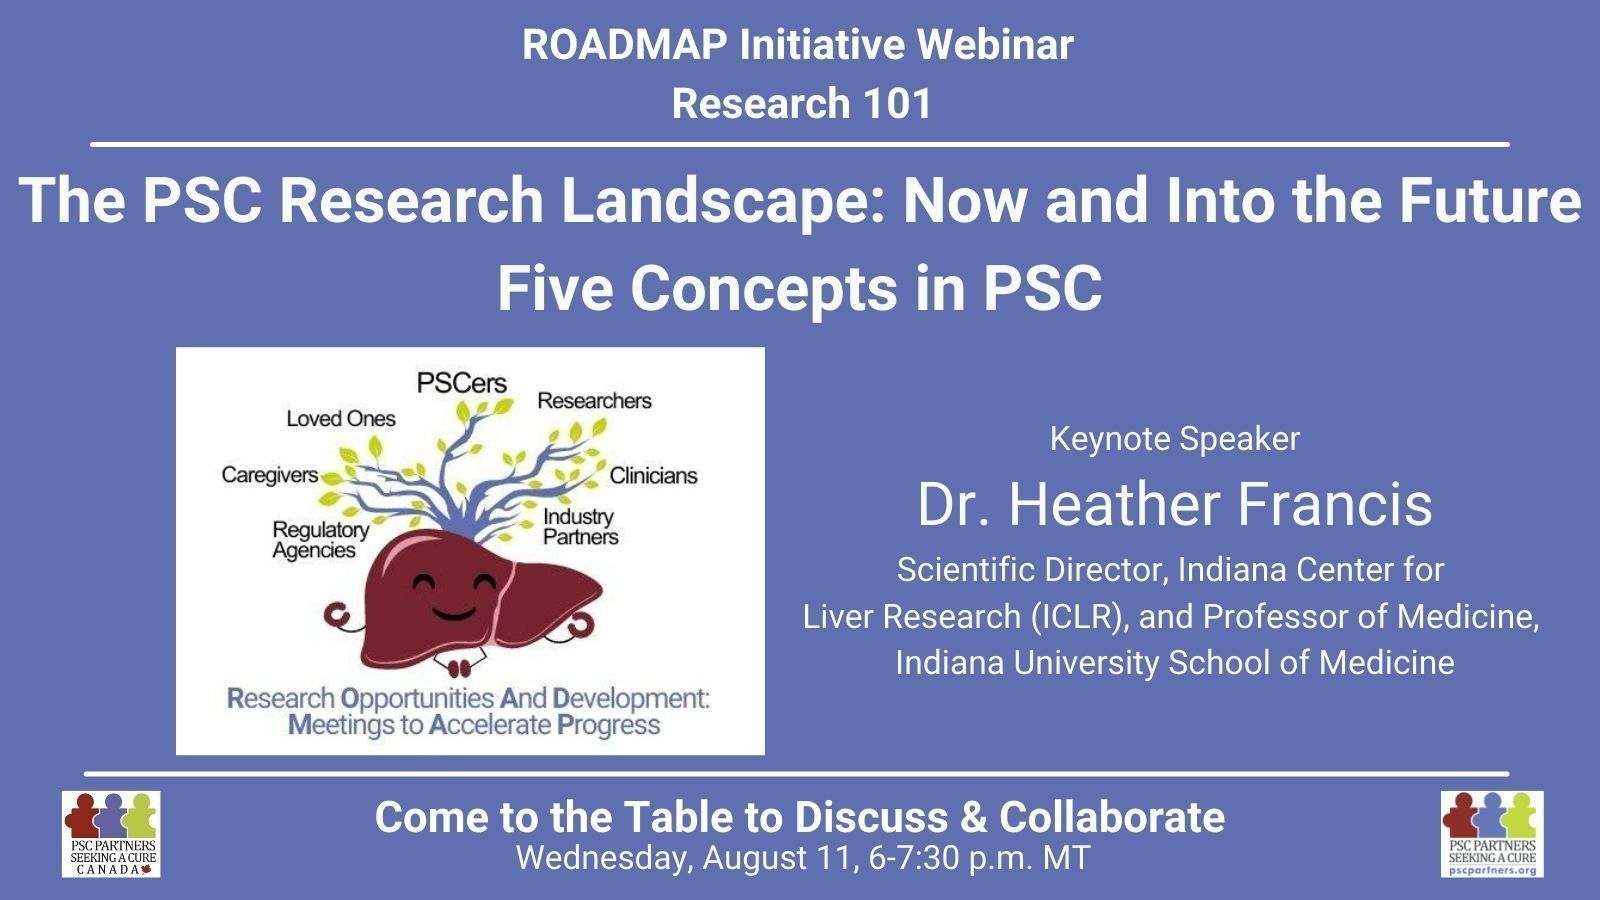 ROADMAP Research 101 - The PSC Research Landscape: Now and Into the Future -- Five Concepts in PSC